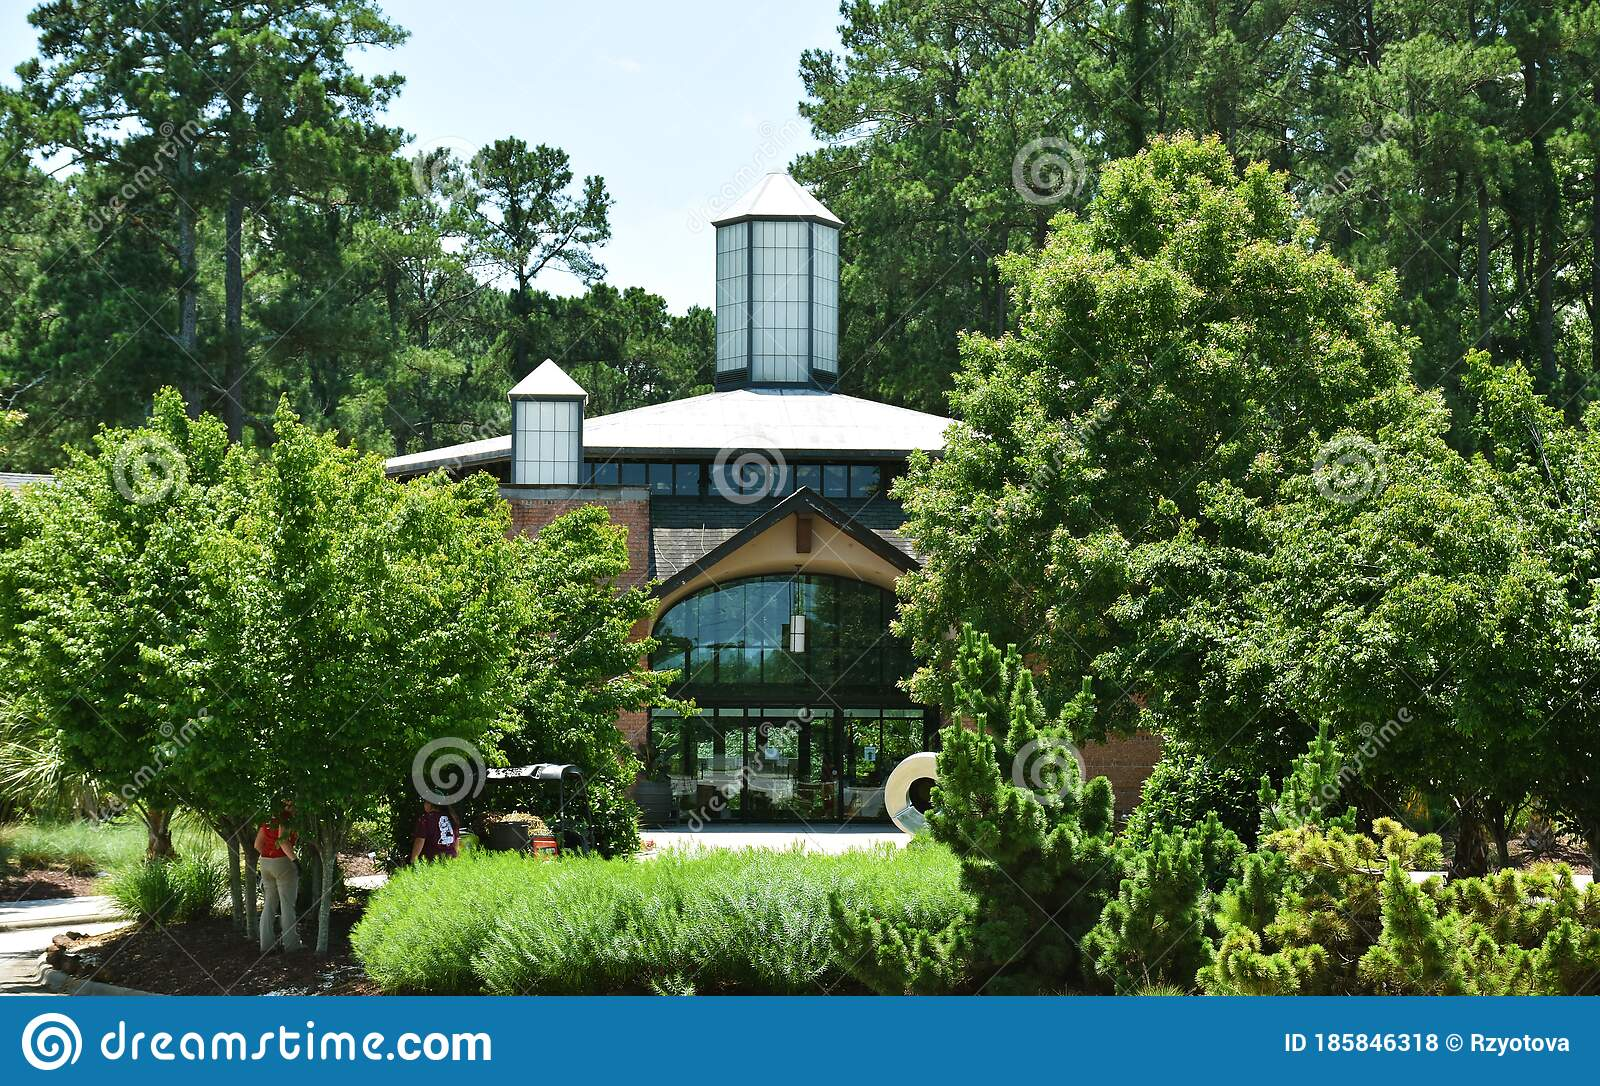 Cape Fear Botanical Garden Photos Free Royalty Free Stock Photos From Dreamstime